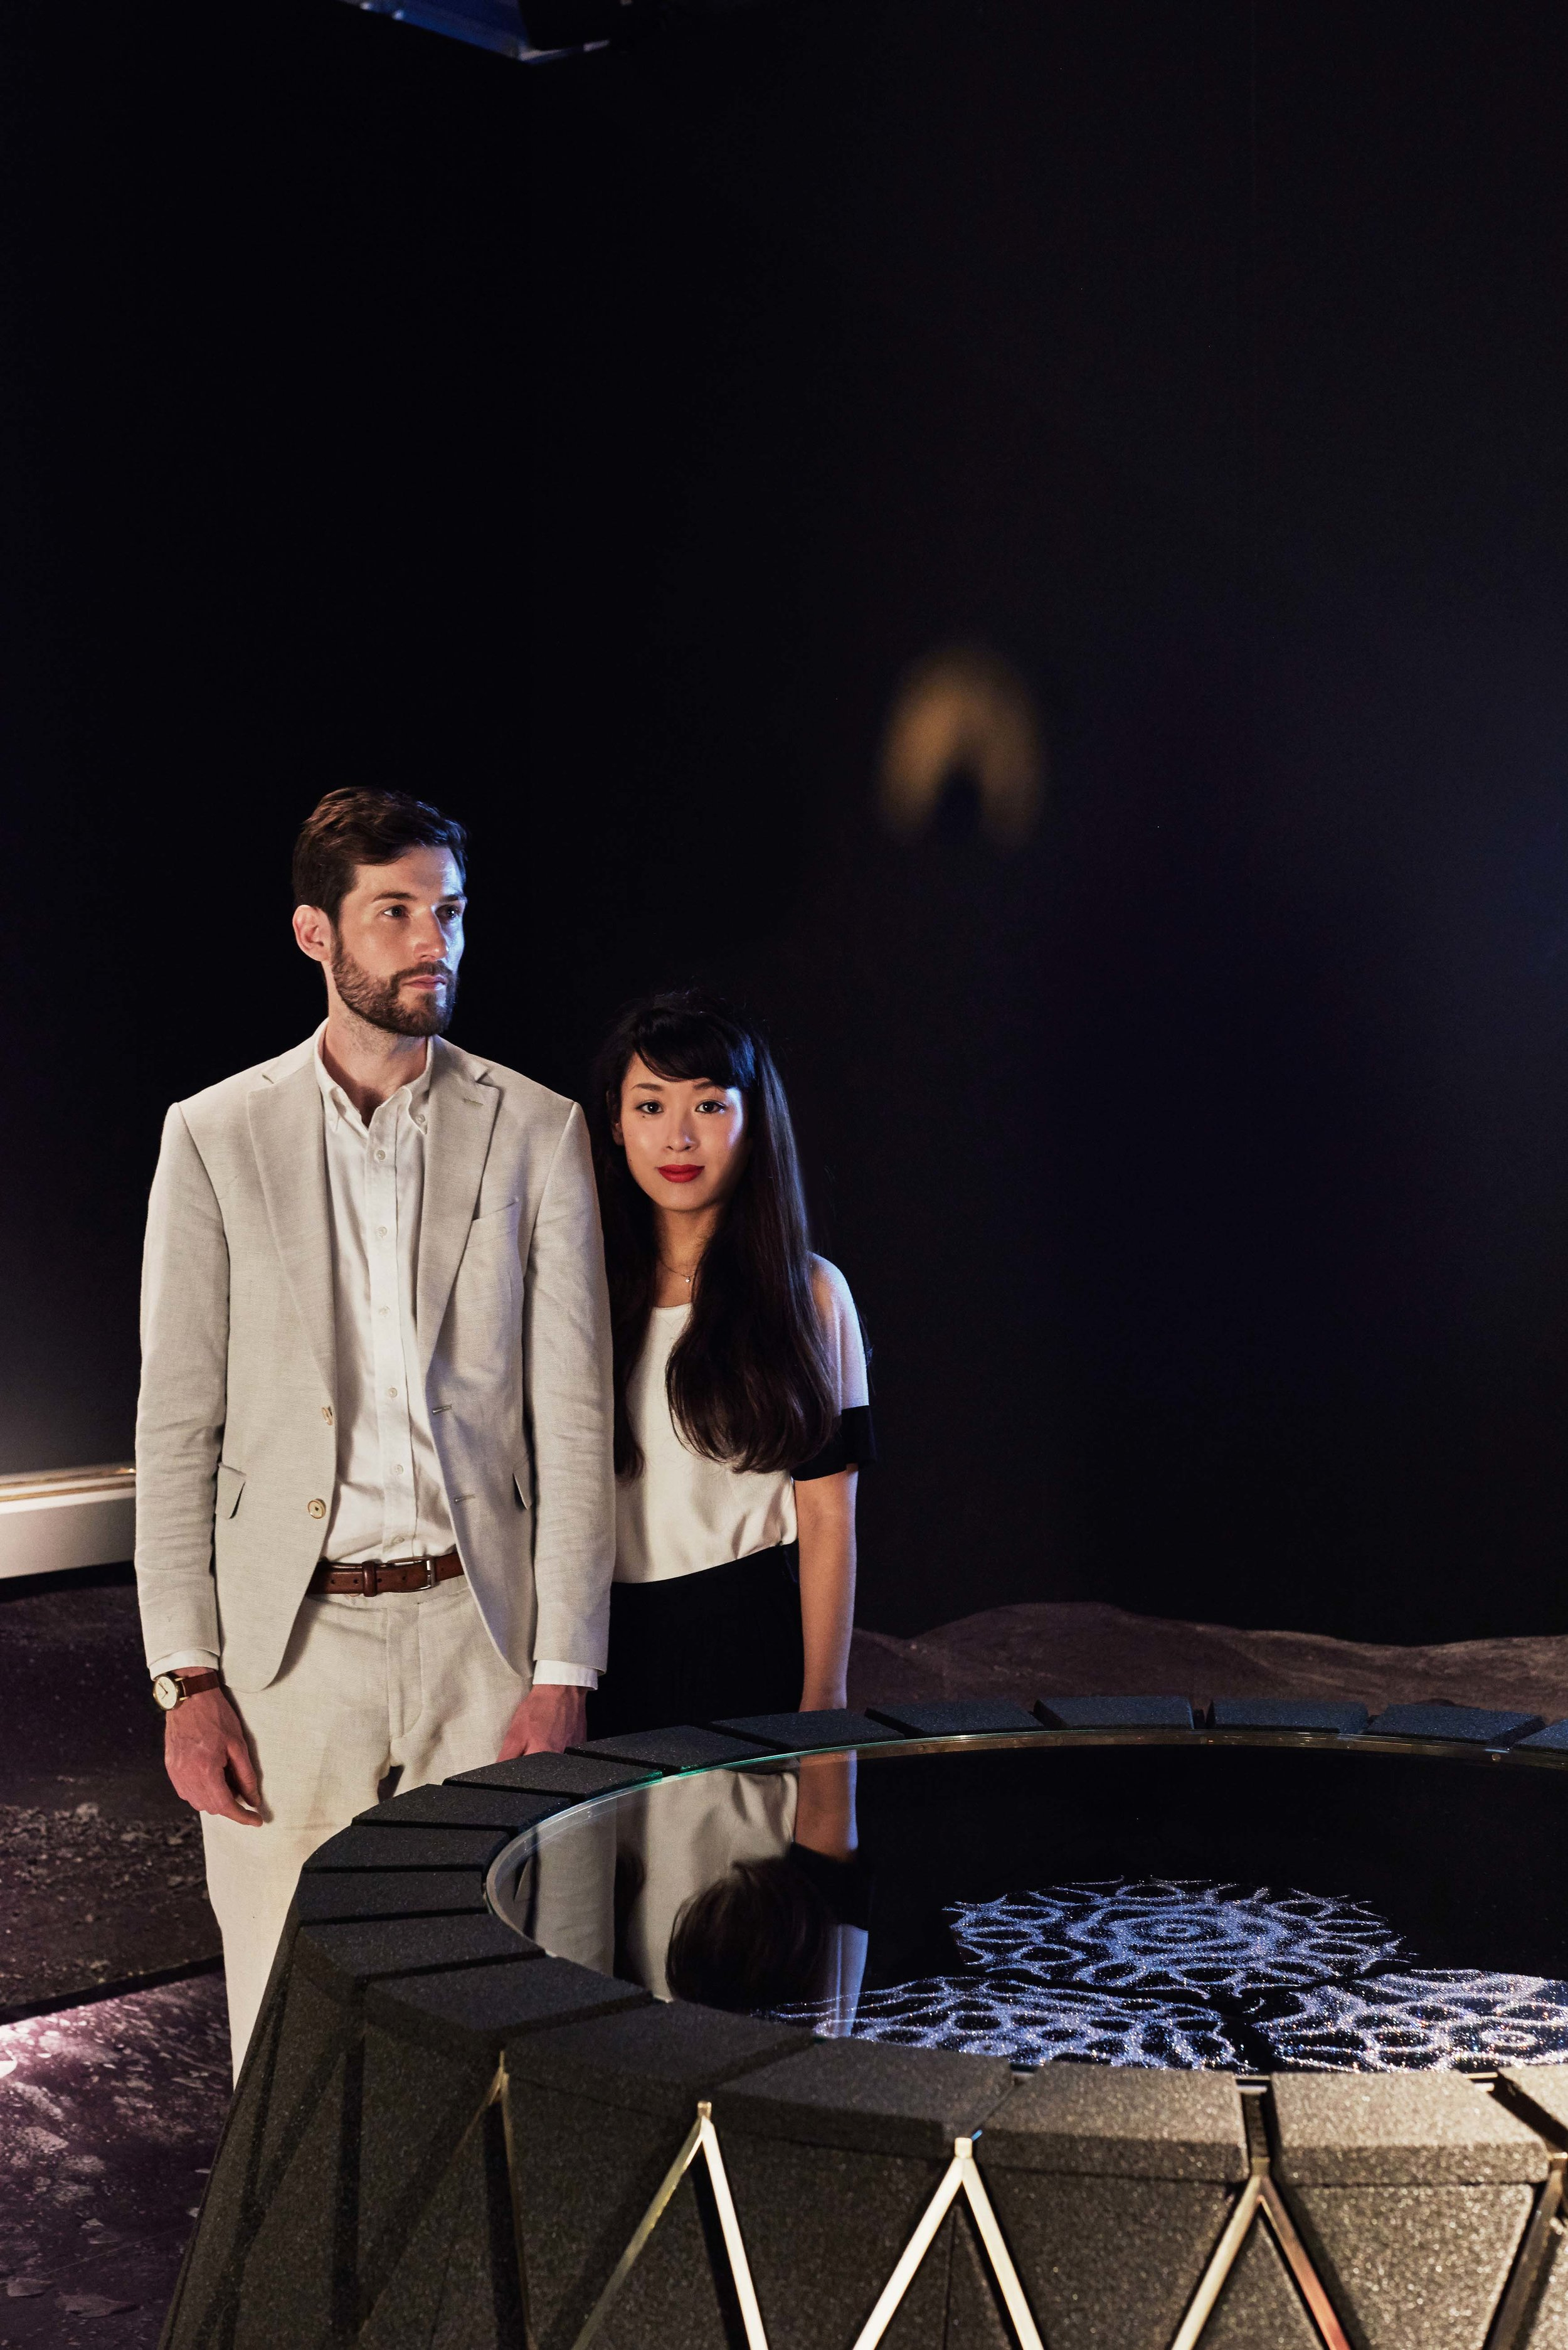 - Studio Swine was founded in 2011 by British designer Alexander Groves and Japanese architect Azusa Murakami. The couple run the small design studio based in London.